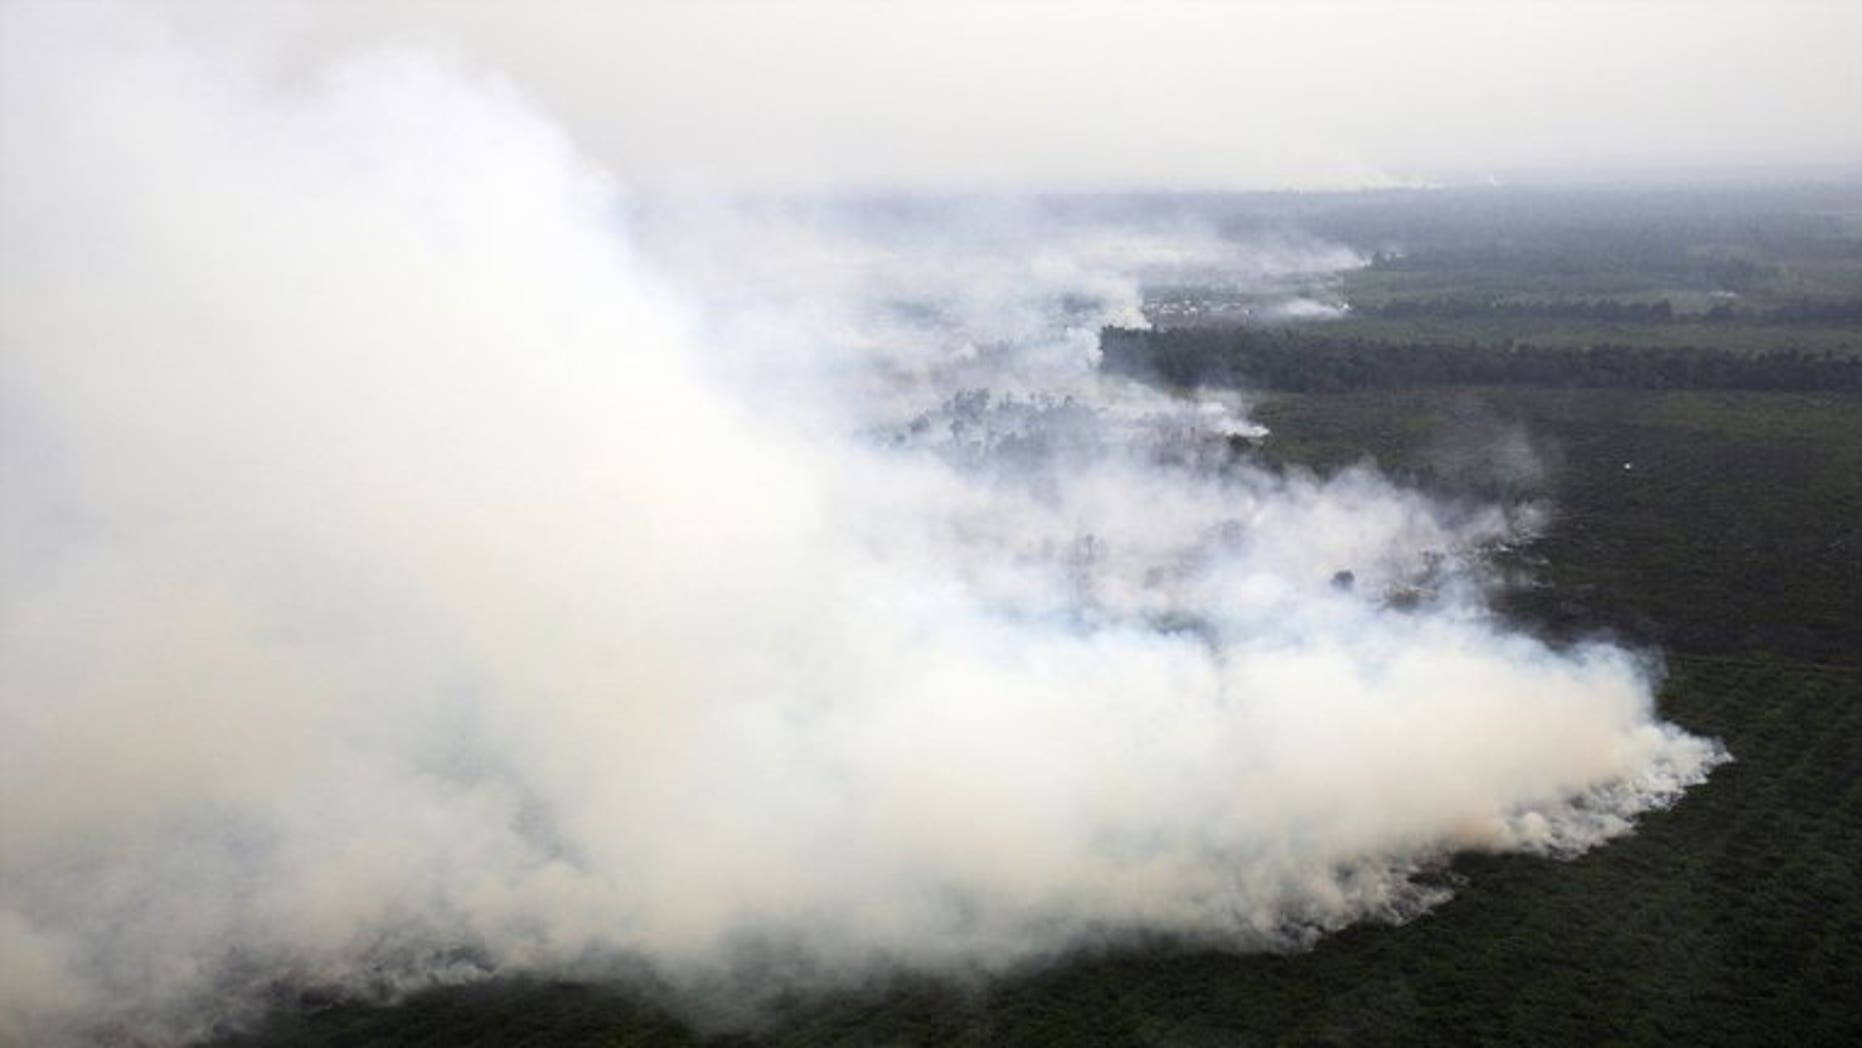 Thick smoke rises from raging forest fires in Indonesia's Sumatra island on June 21, 2013. Indonesian police said they were investigating a Malaysian company over forest fires that contributed to choking haze last month, in Southeast Asia's worst pollution crisis in years.